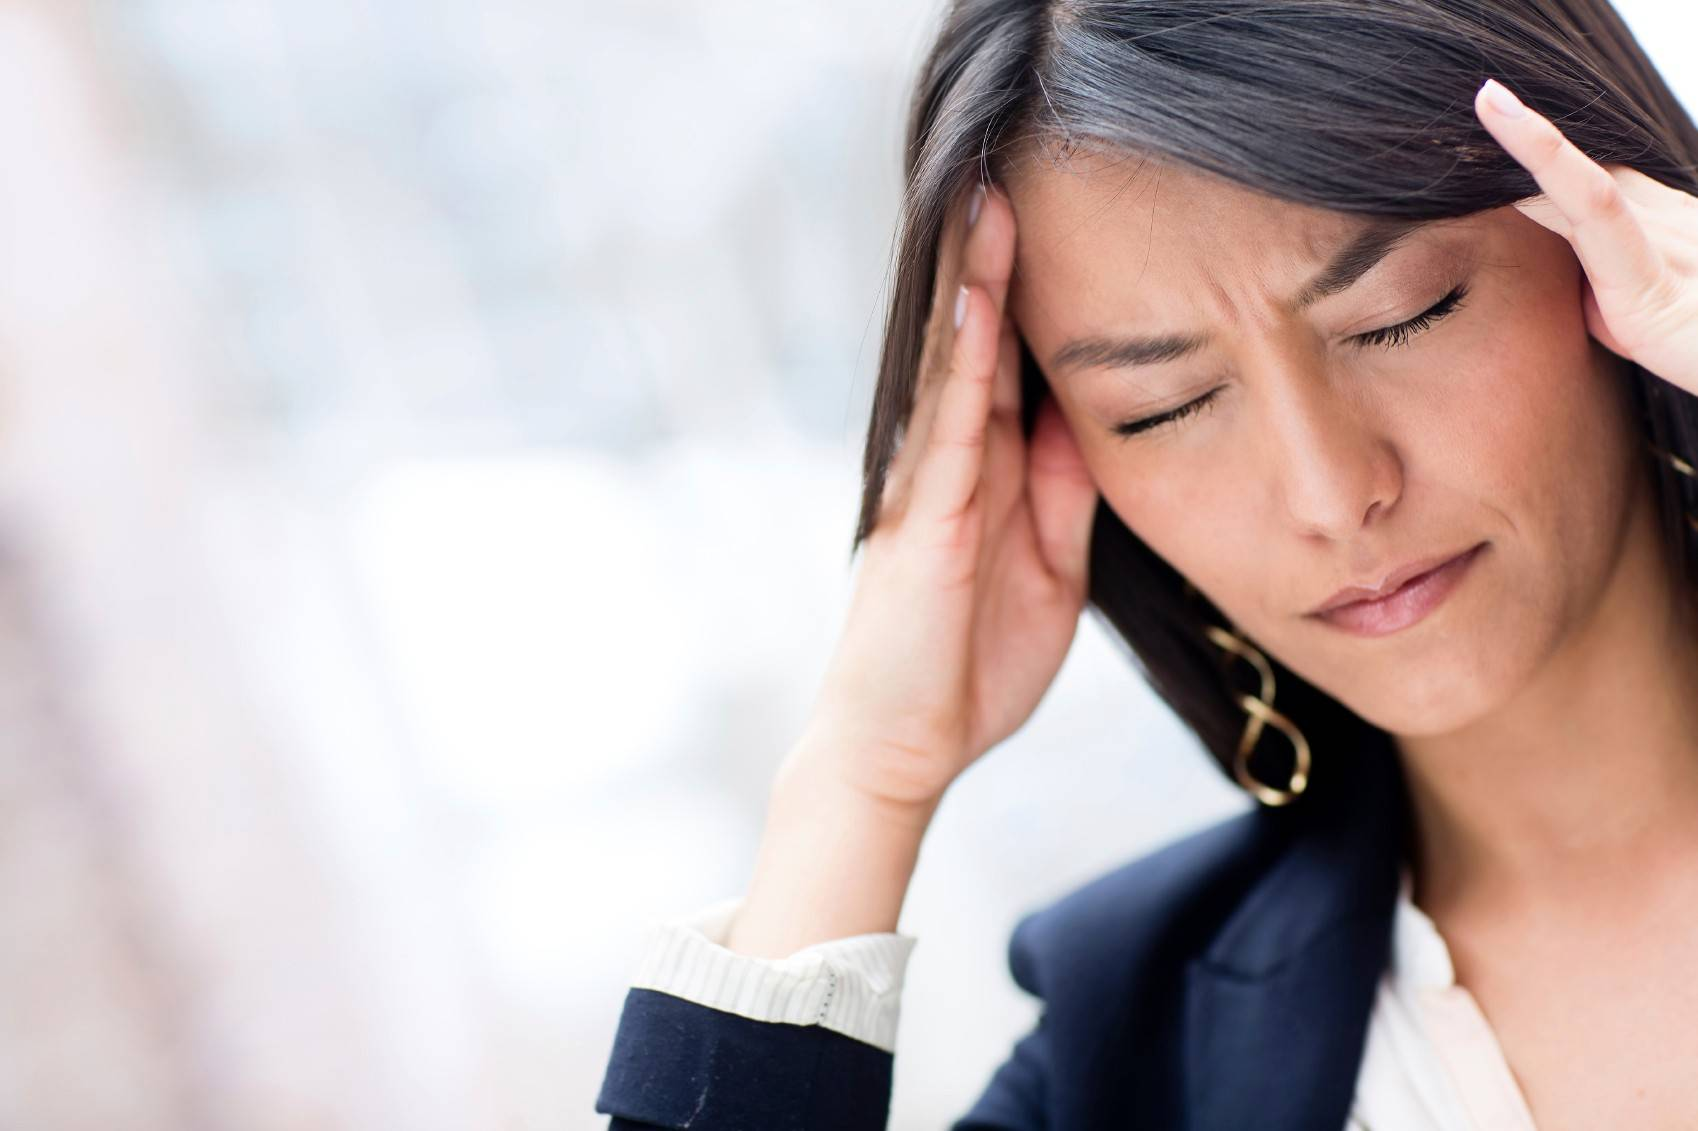 If you suffer from frequent tension headaches, try one of these strategies.